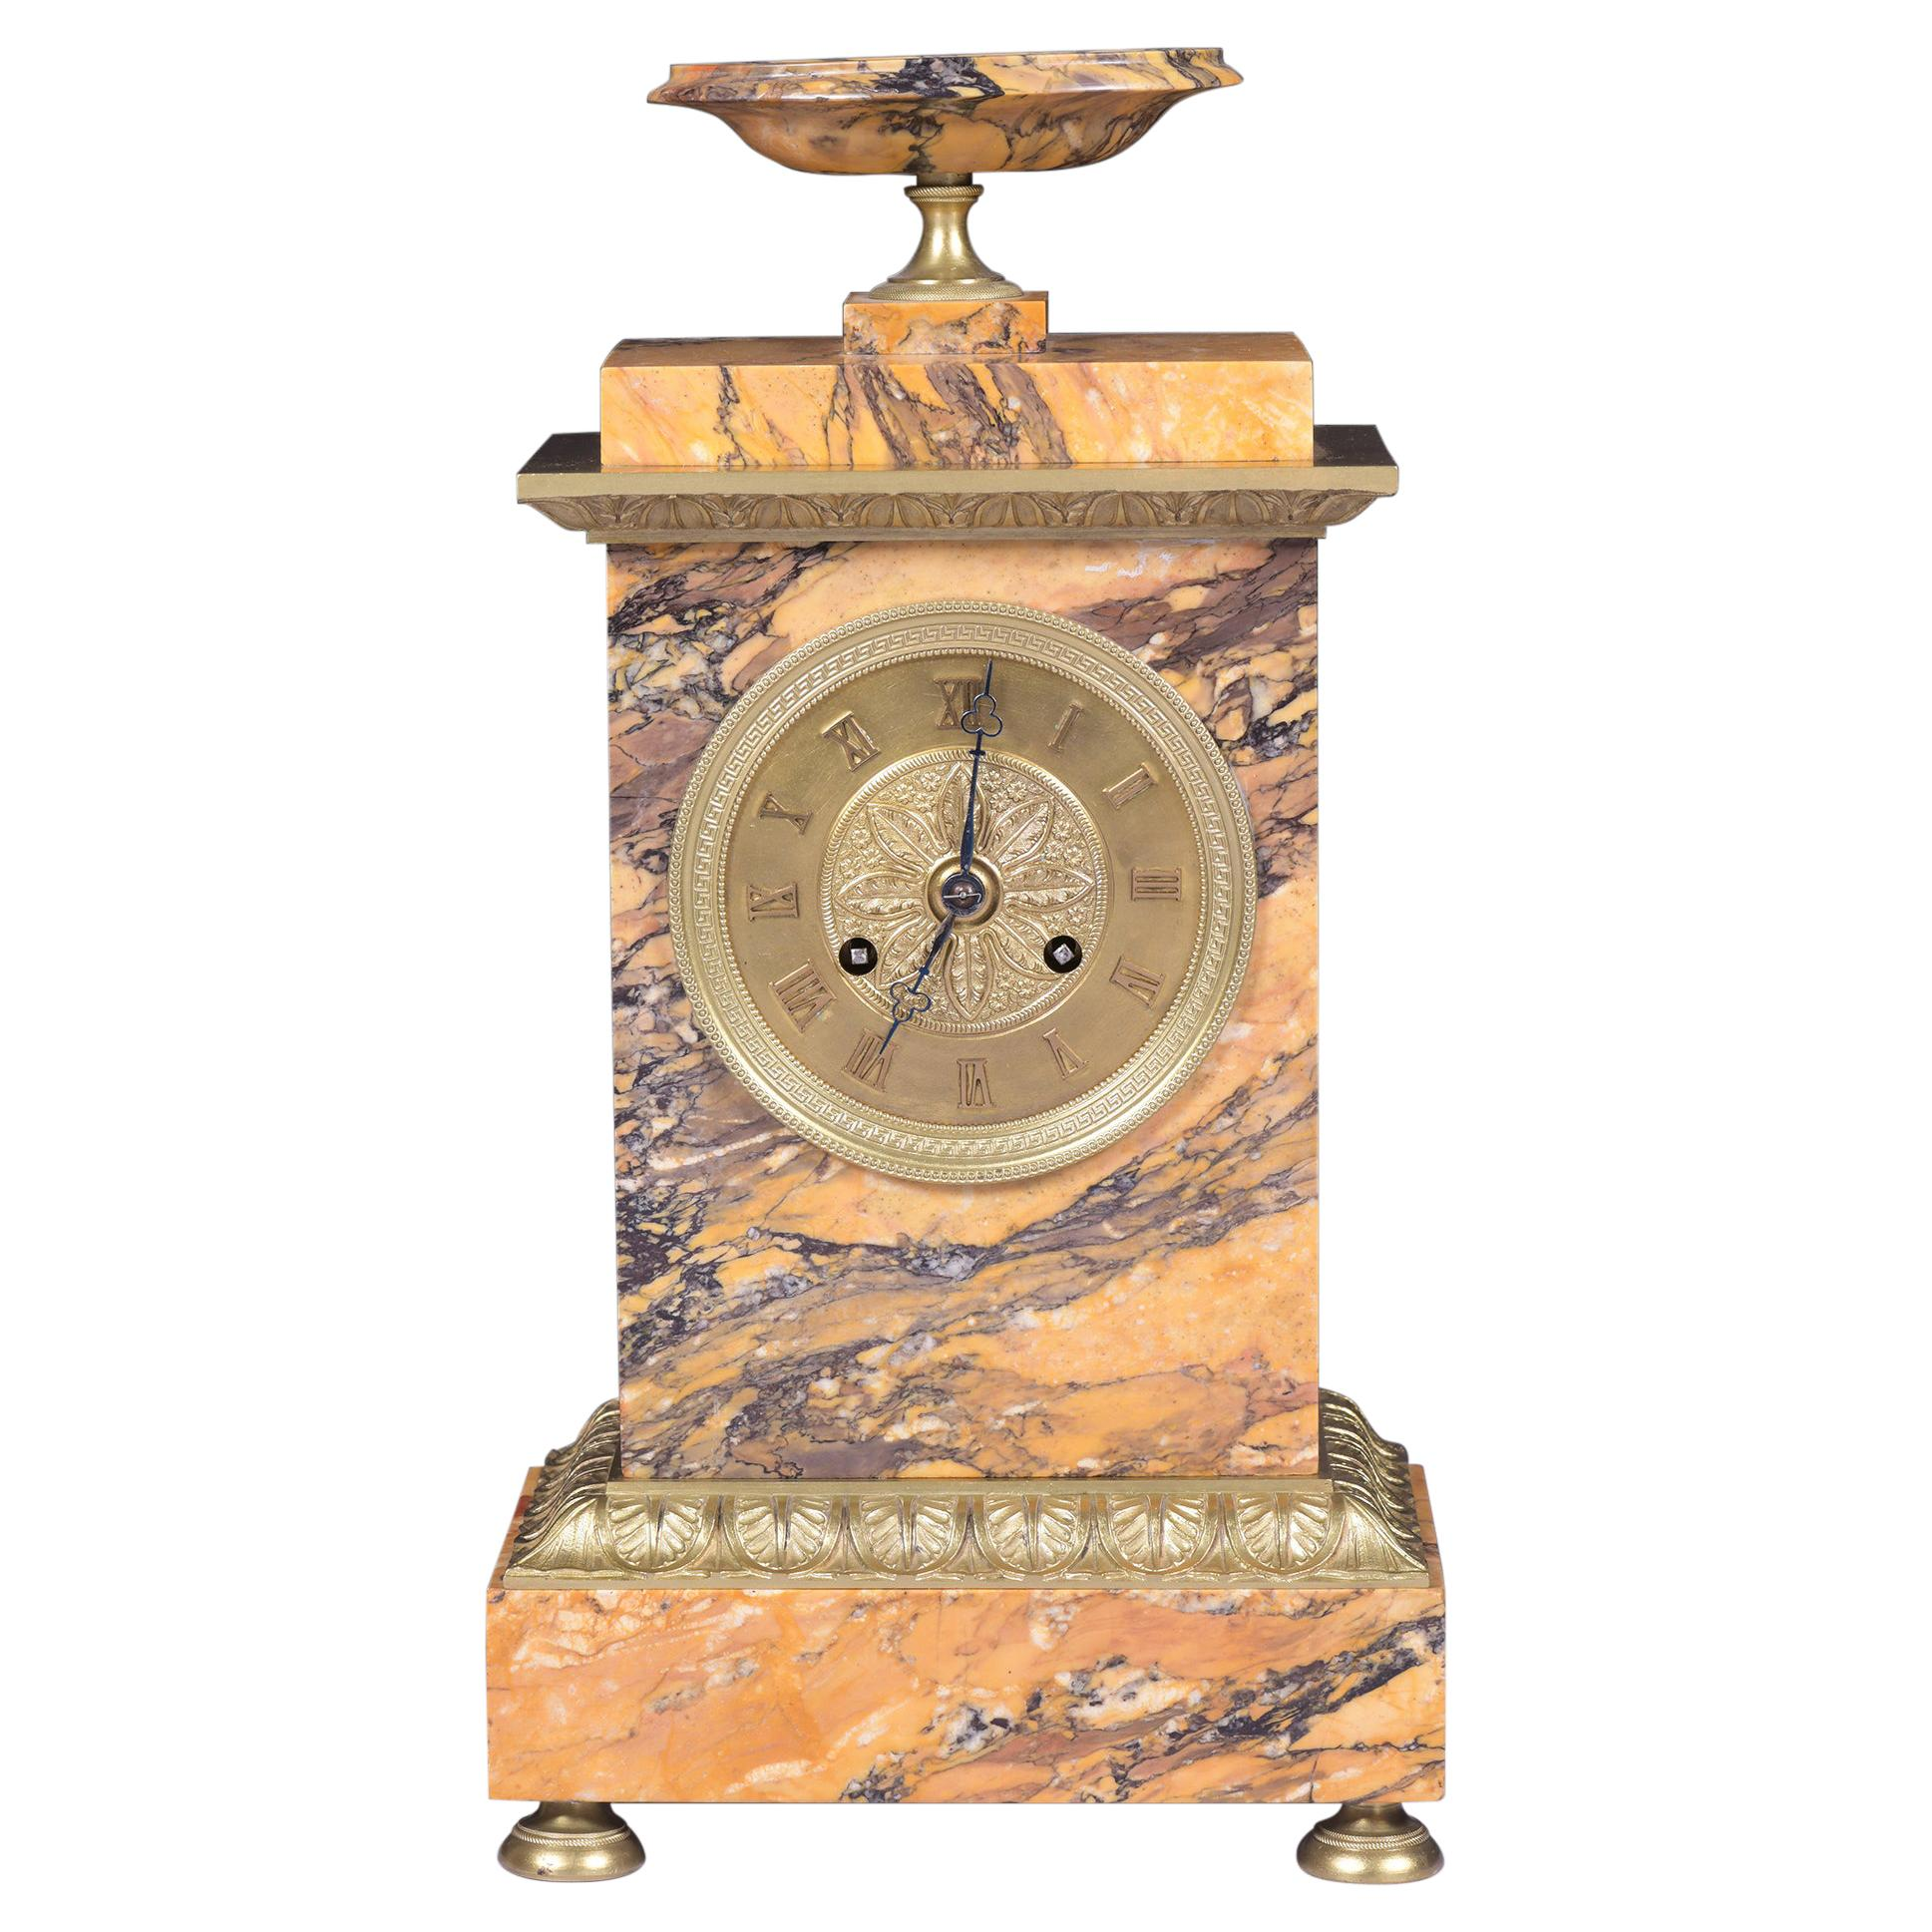 Early 19th Century French Sienna Marble Mantle Clock